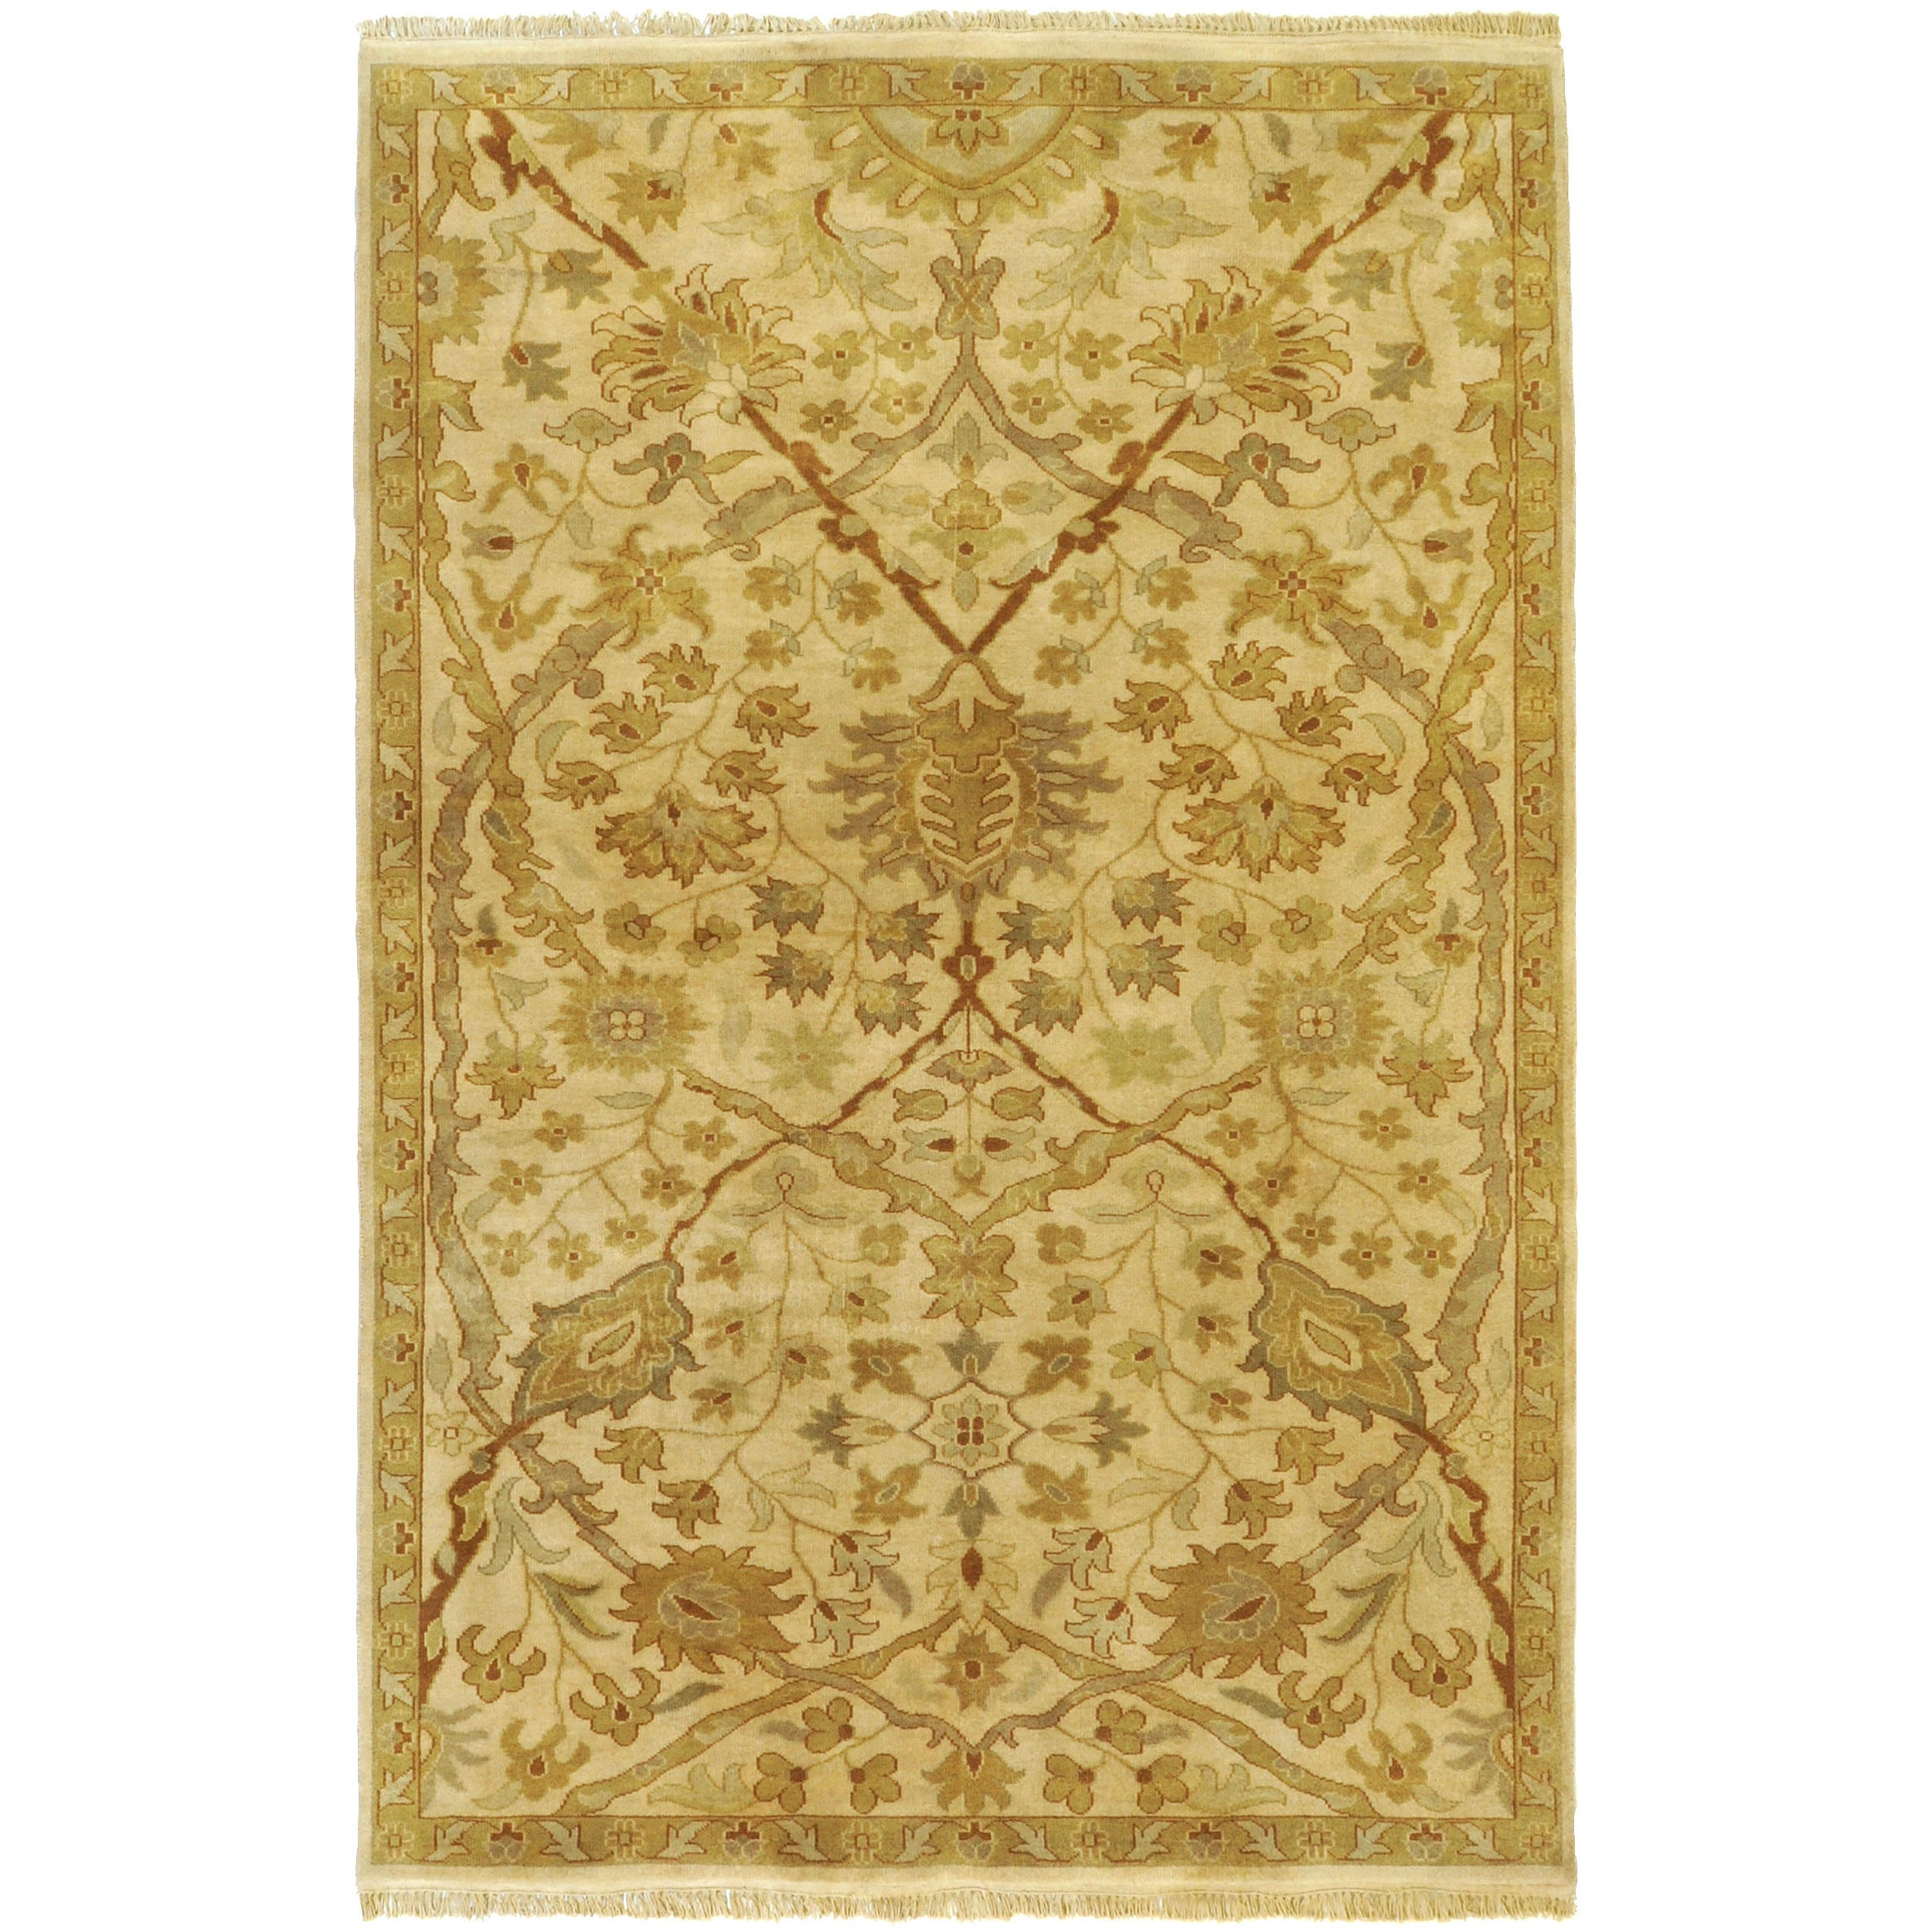 Hand-knotted Cream Kabocha New Zealand Wool Area Rug - 3'9 x 5'9